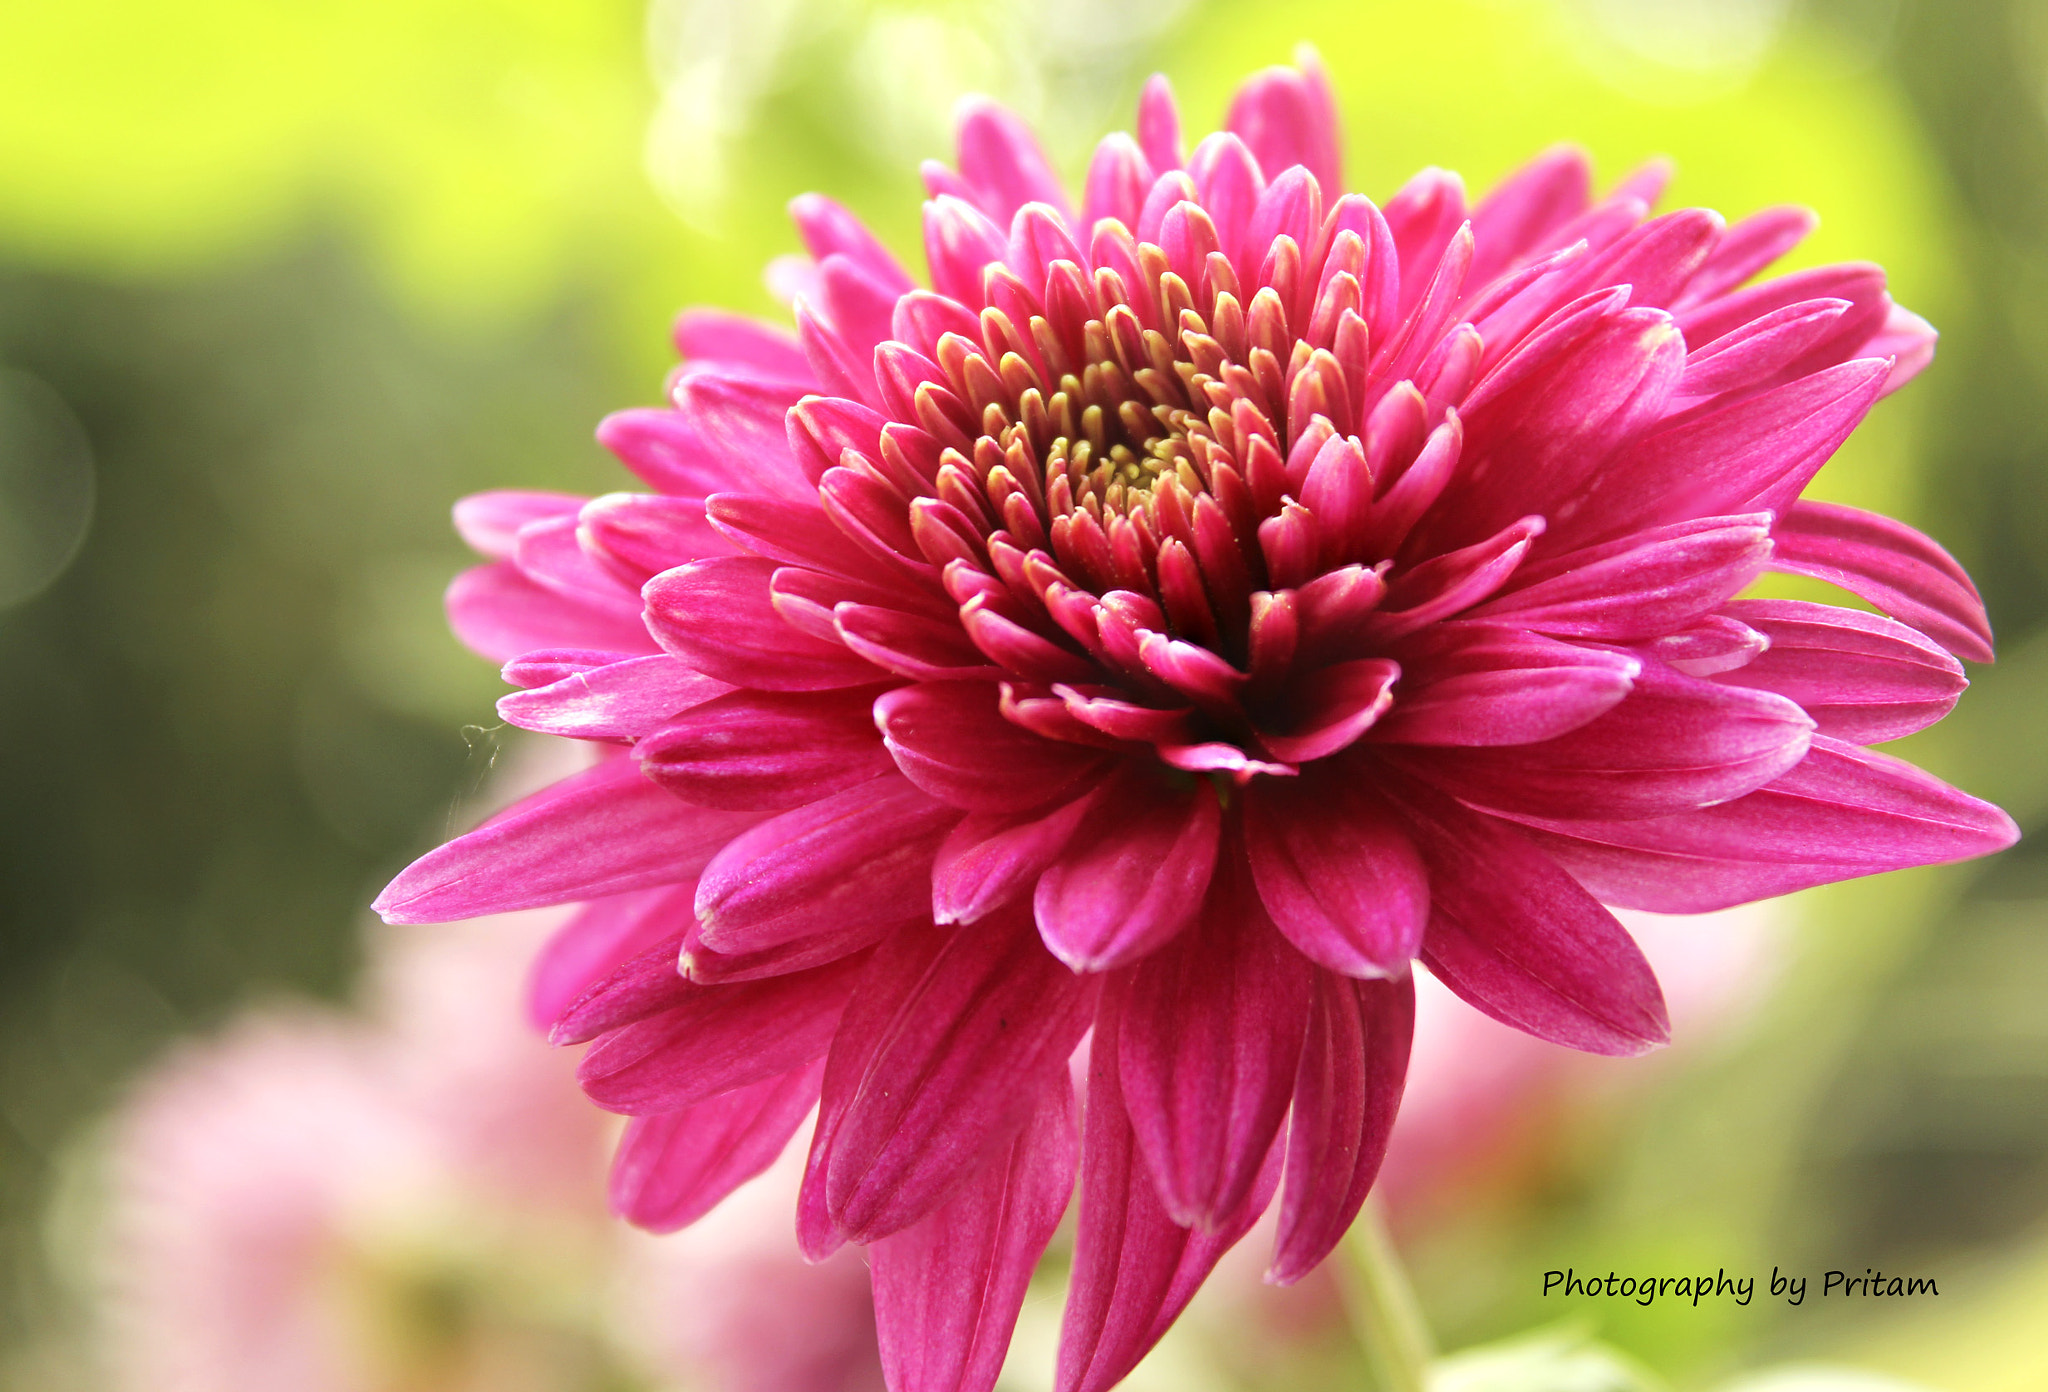 Photograph Chrysenthimum by Pritam Majumder on 500px